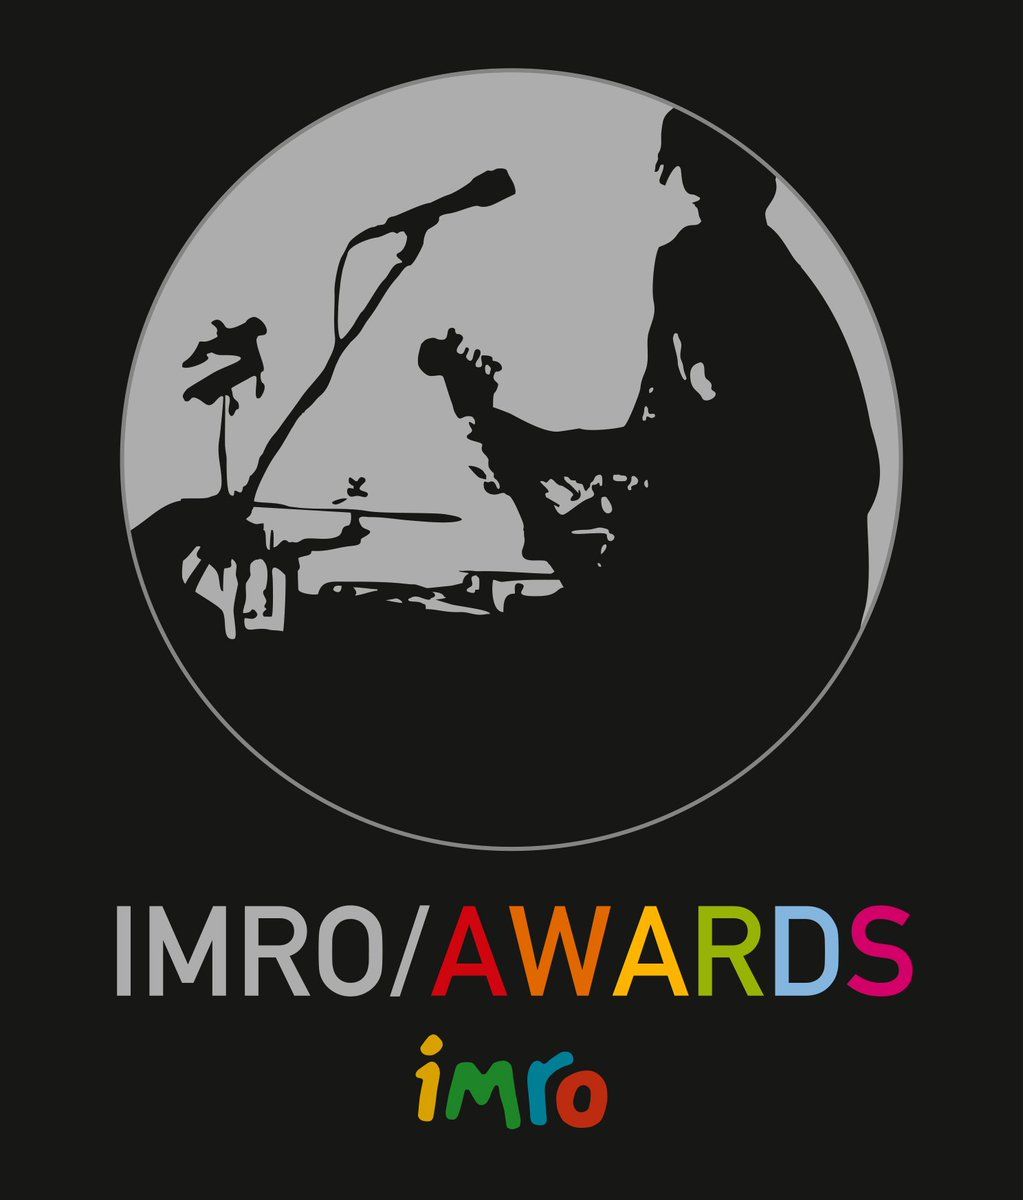 imroawards